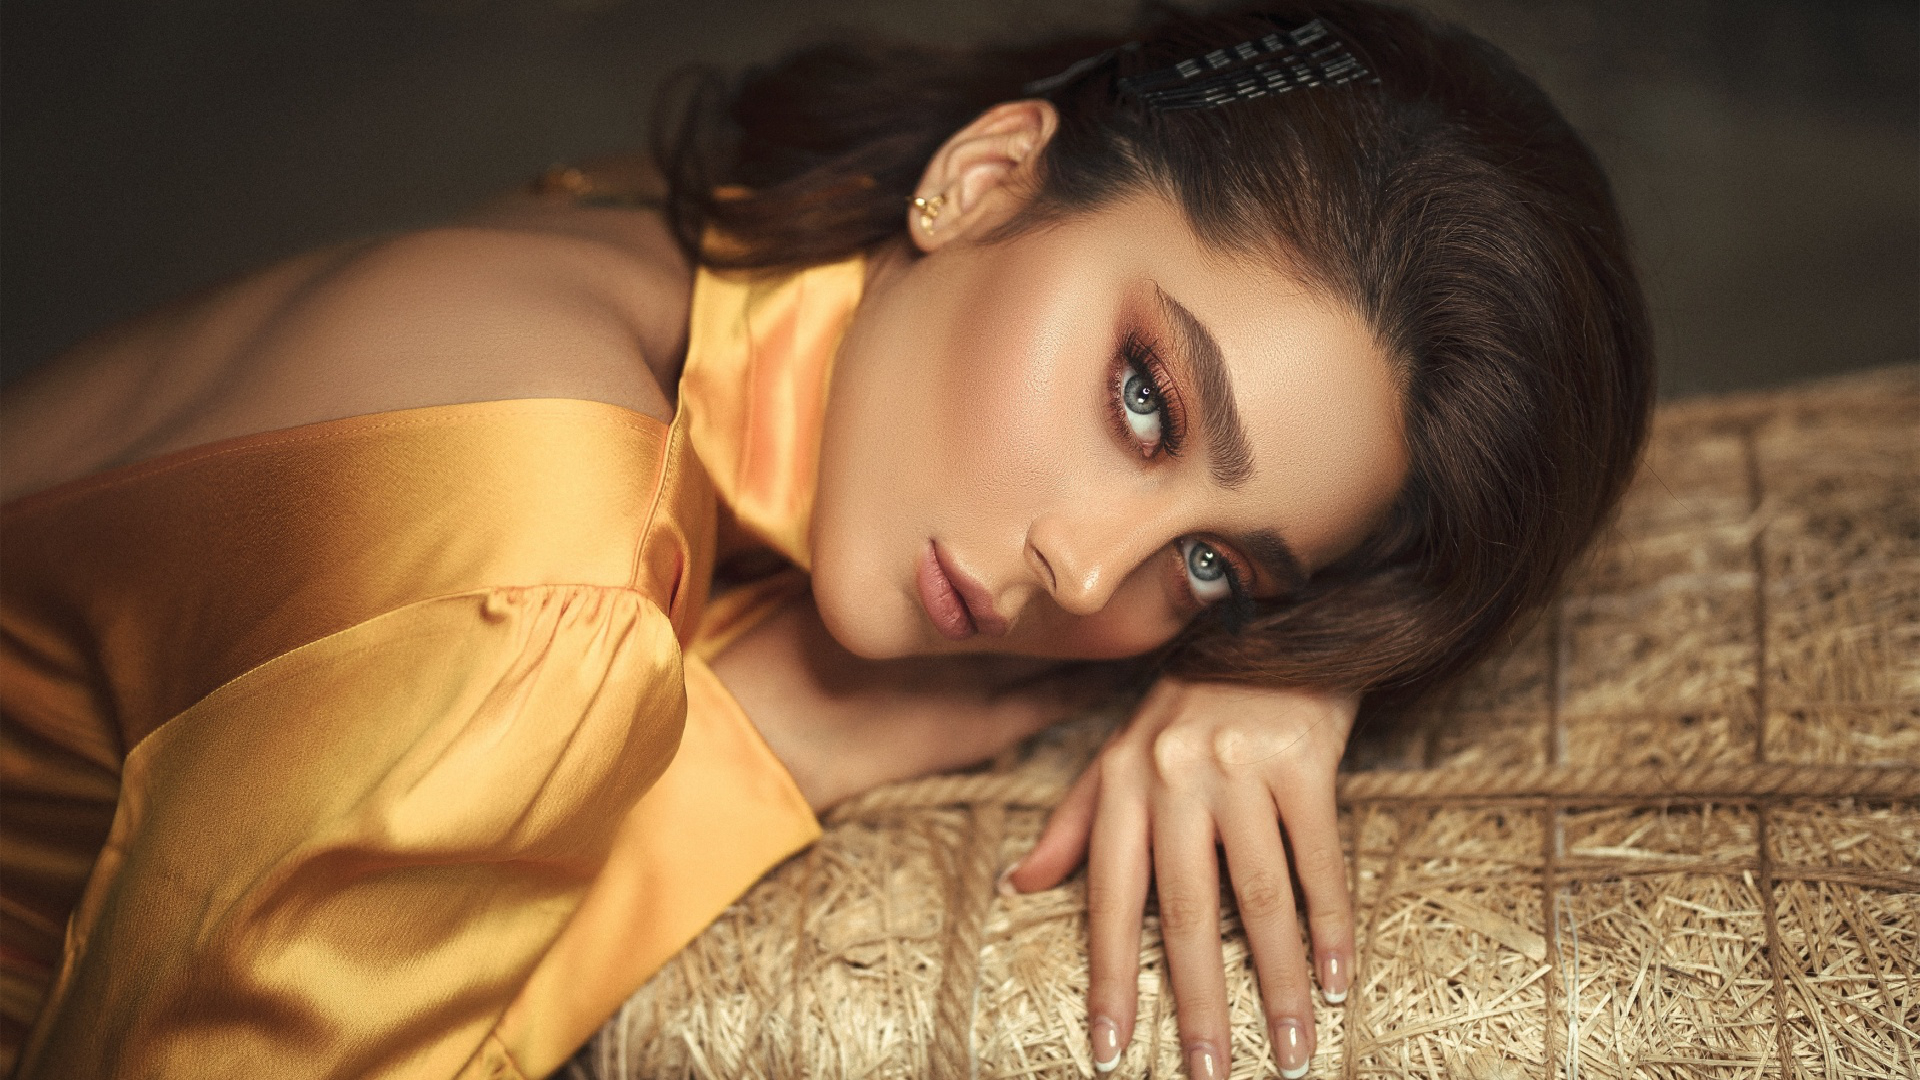 beautiful,fashion,human,celebrities,char,design,female,portrait,girl,satin,style,picturesque,womanhood,young,pretty,woman,beauty,makeup,outfit,brownhair,background,cleaning woman,look,cleaning lady,adult female,face,youth,person,aesthetic,model,charwoman,vogue